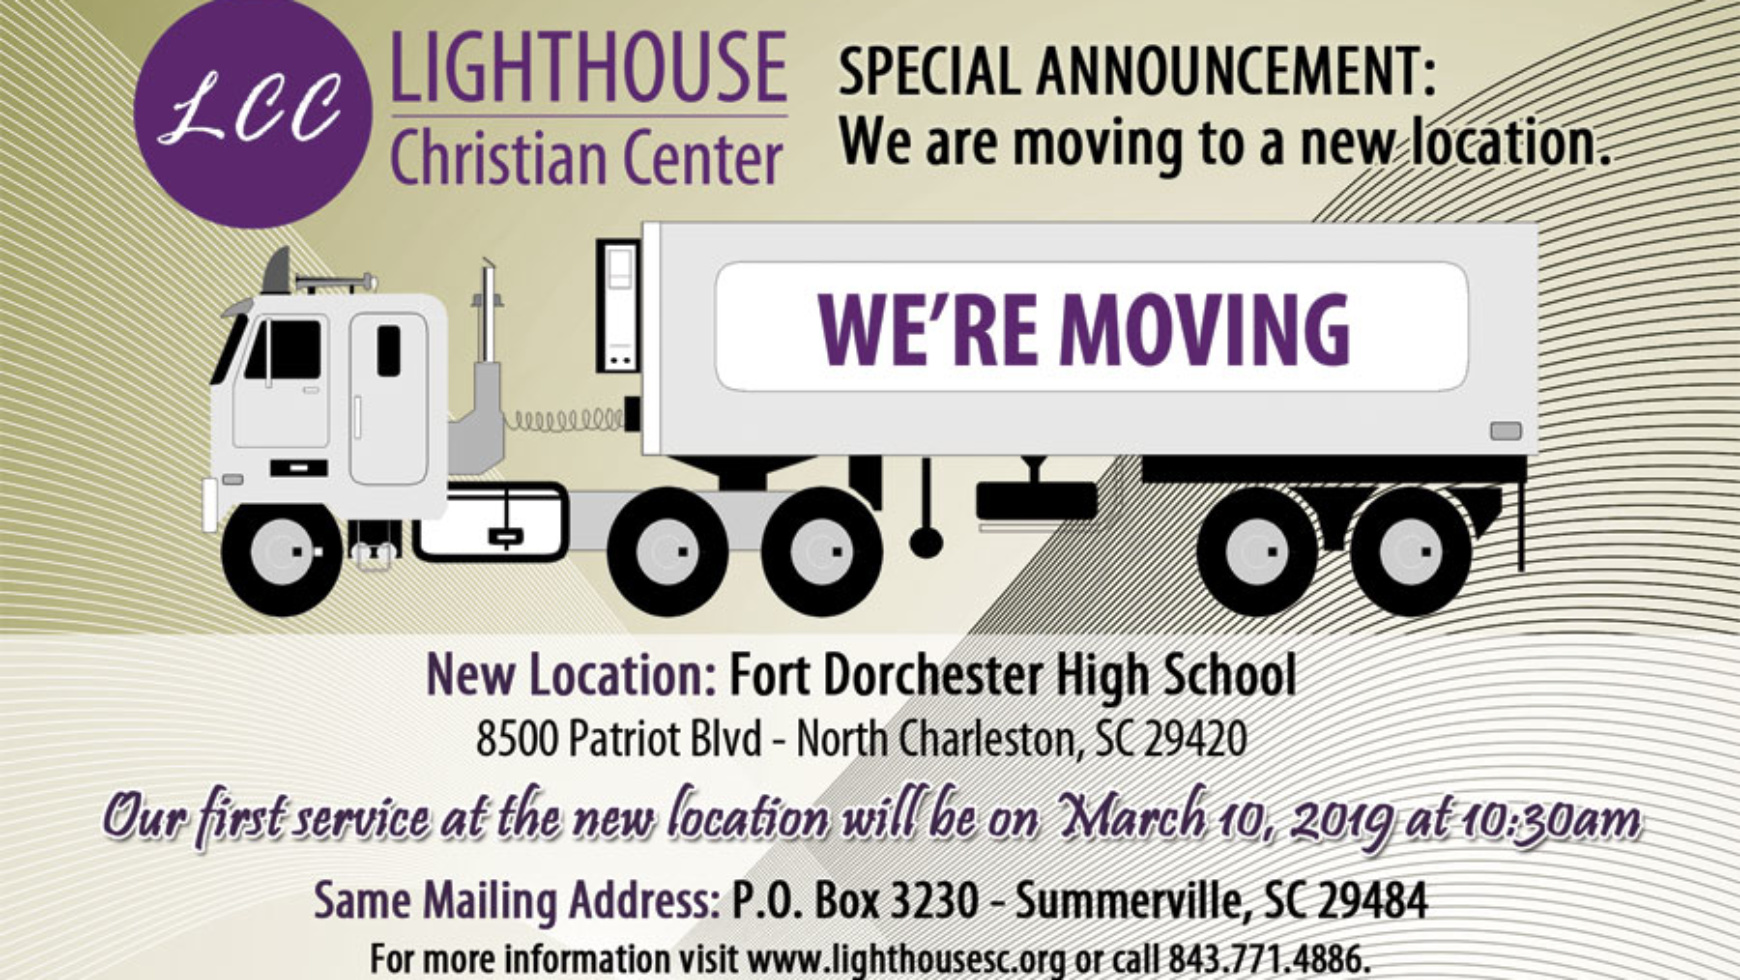 SPECIAL ANNOUNCEMENT: We are moving to a new location.